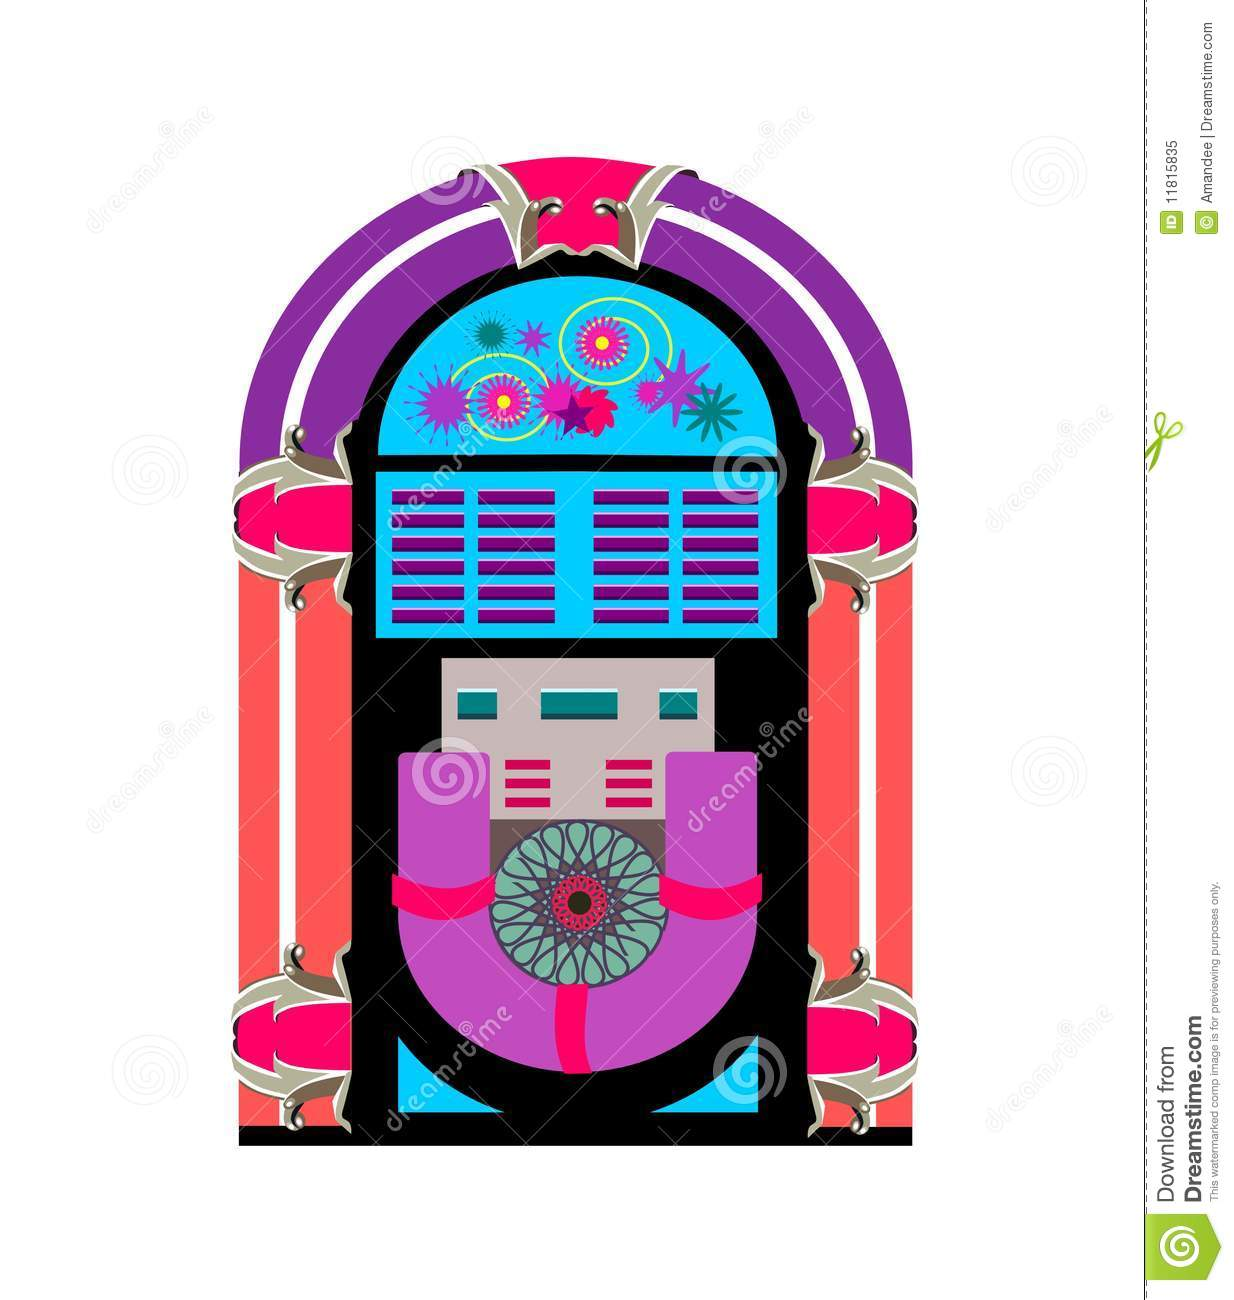 Line Art Jukebox : Jukebox music player royalty free stock photo image